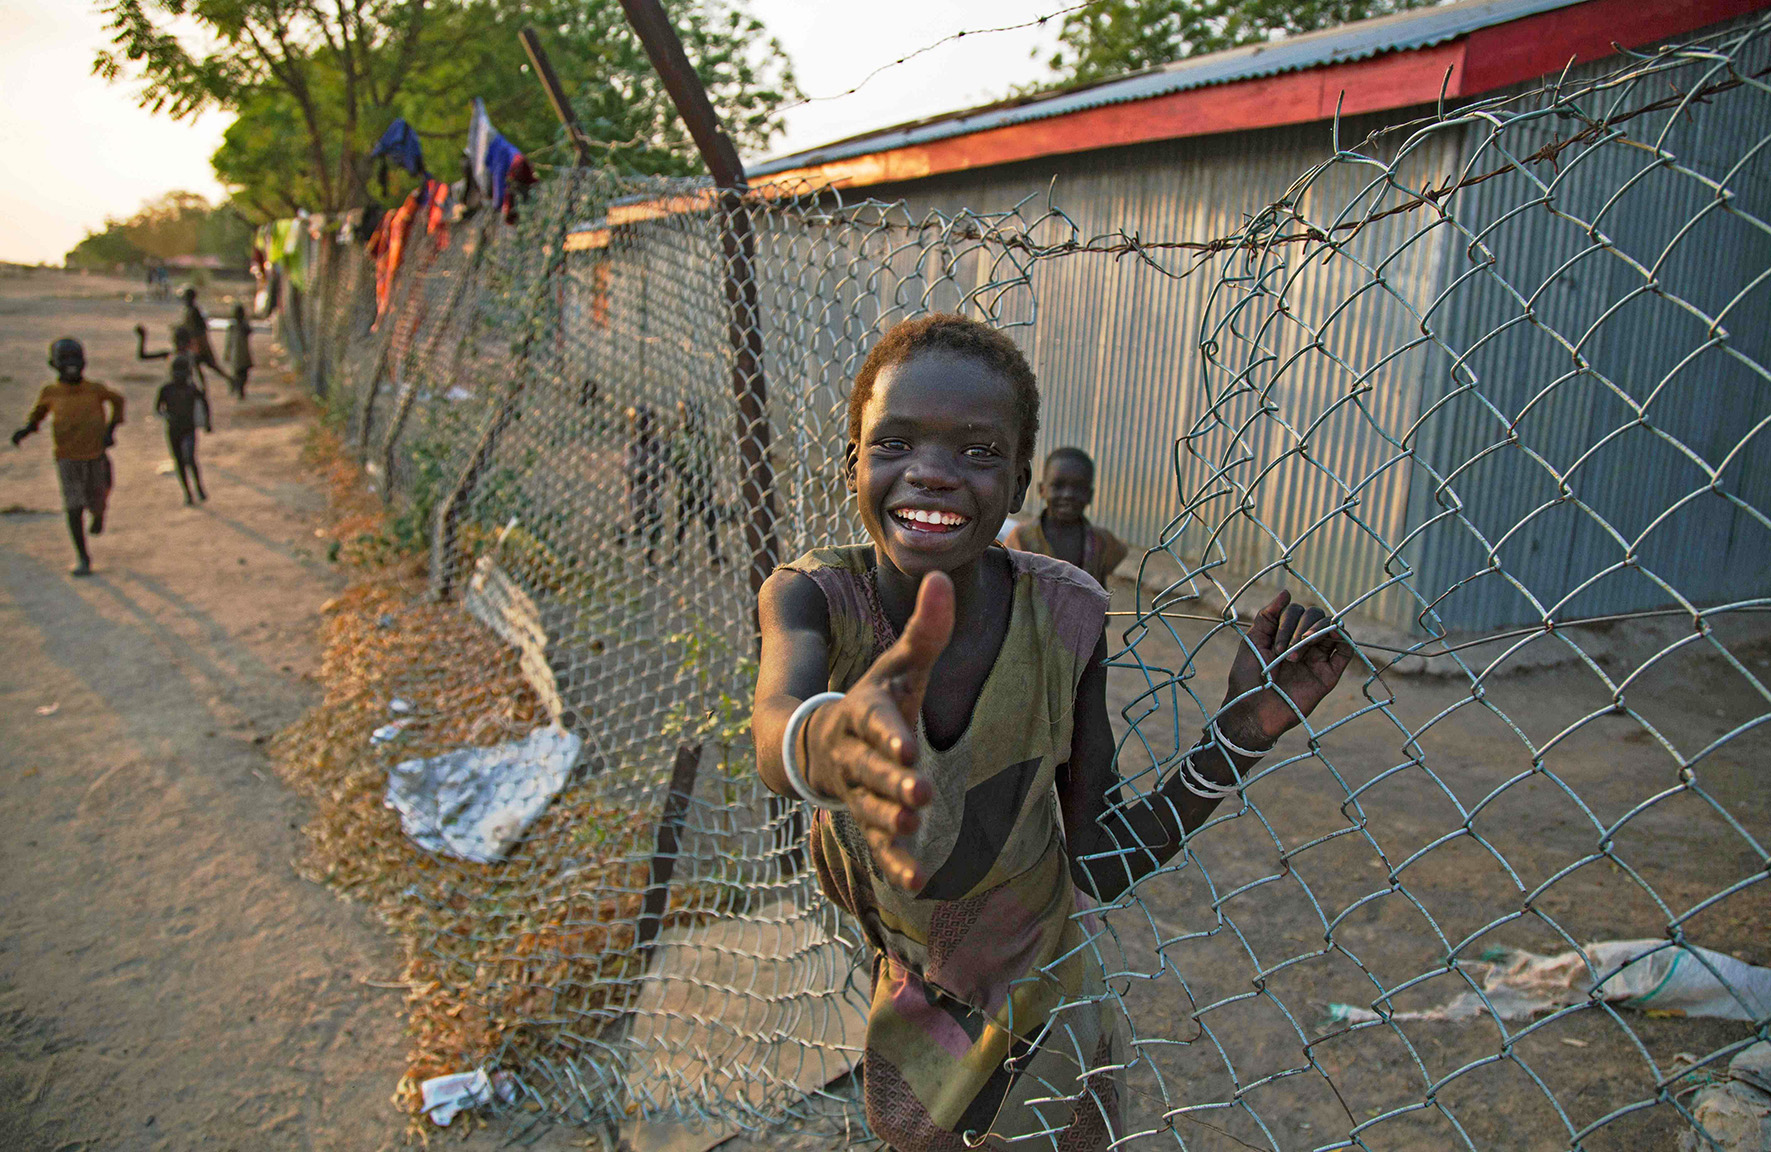 A child climbs through a fench inside the former compound of the International Committee of the Red Cross (ICRC) in the half-emptied village of Leer, South Sudan, on February 3, 2016.   A large part of the civilian population fled the village due to the fighting between Army forces and the Sudan People's Liberation Movement in Opposition (SPLM-IO) on October 2, 2015. Government forces pushed the rebels out but the clashes were followed with intensive looting by armed men who entered humanitarian compounds and stole equipment, medical supplies and money. / AFP / ALBERT GONZALEZ FARRANALBERT GONZALEZ FARRAN/AFP/Getty Images